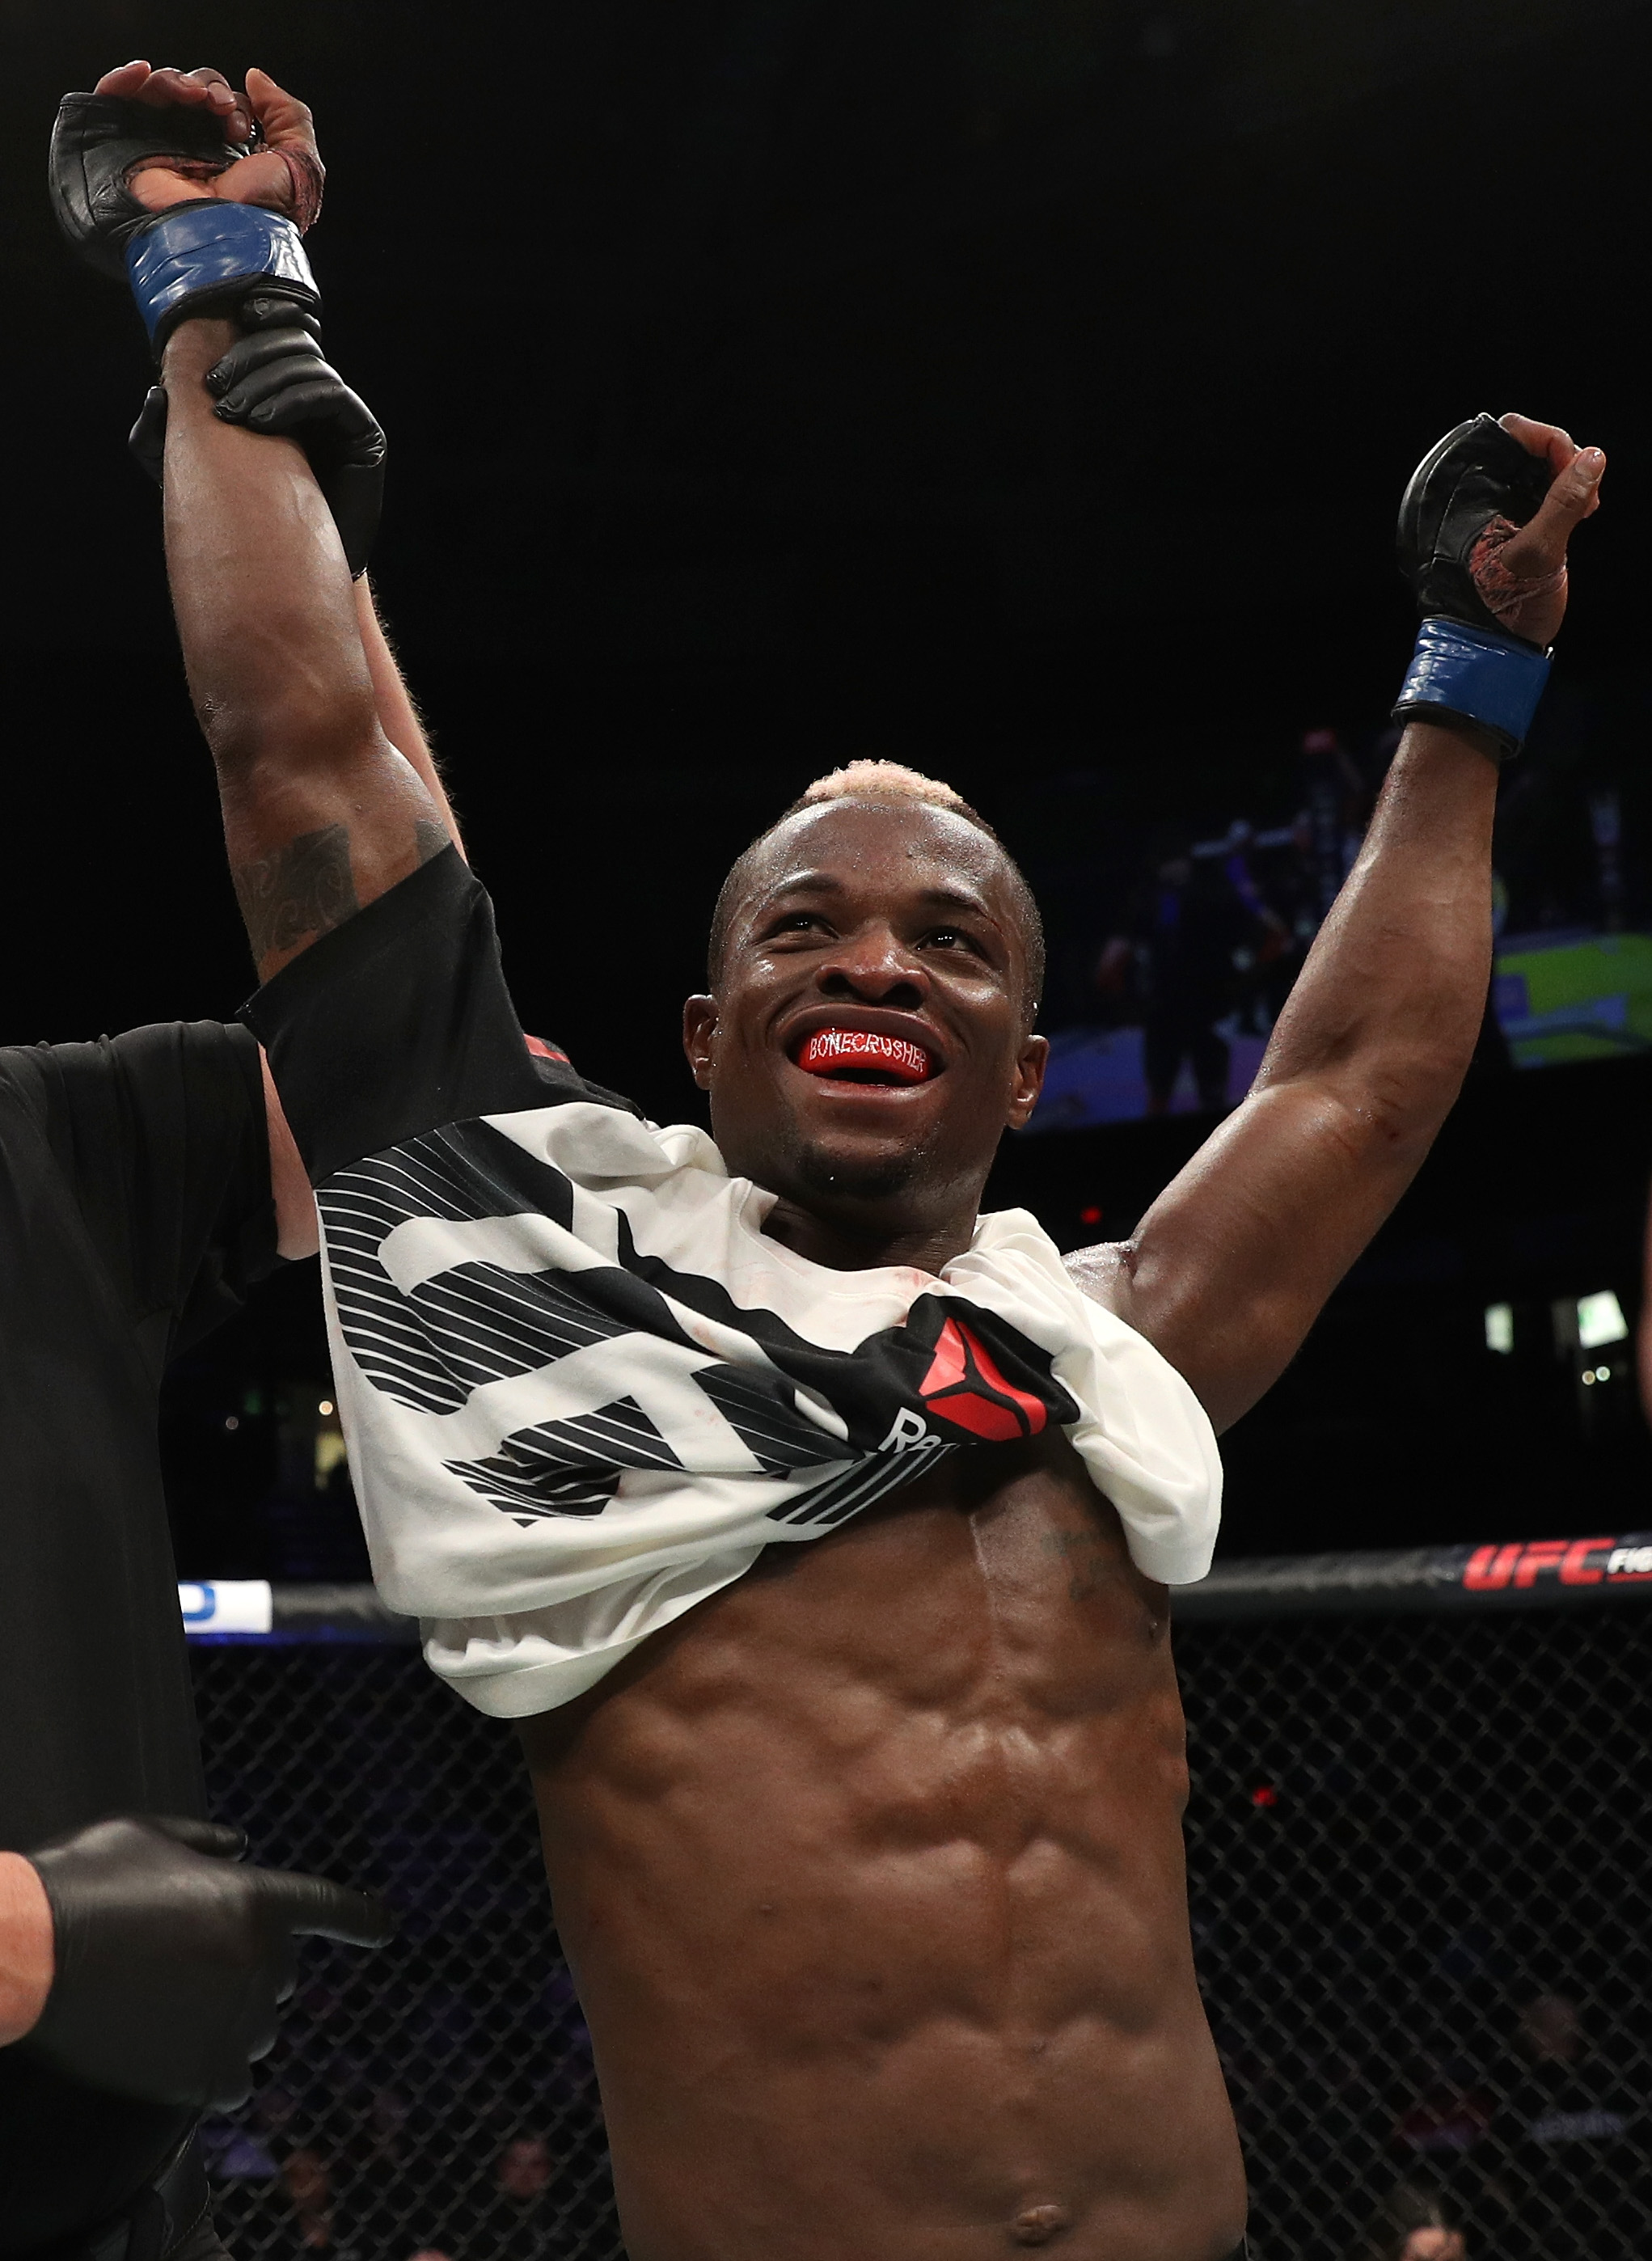 Nick Hein blocks Marc Diakiese on Instagram after the British UFC star chases him for London fight